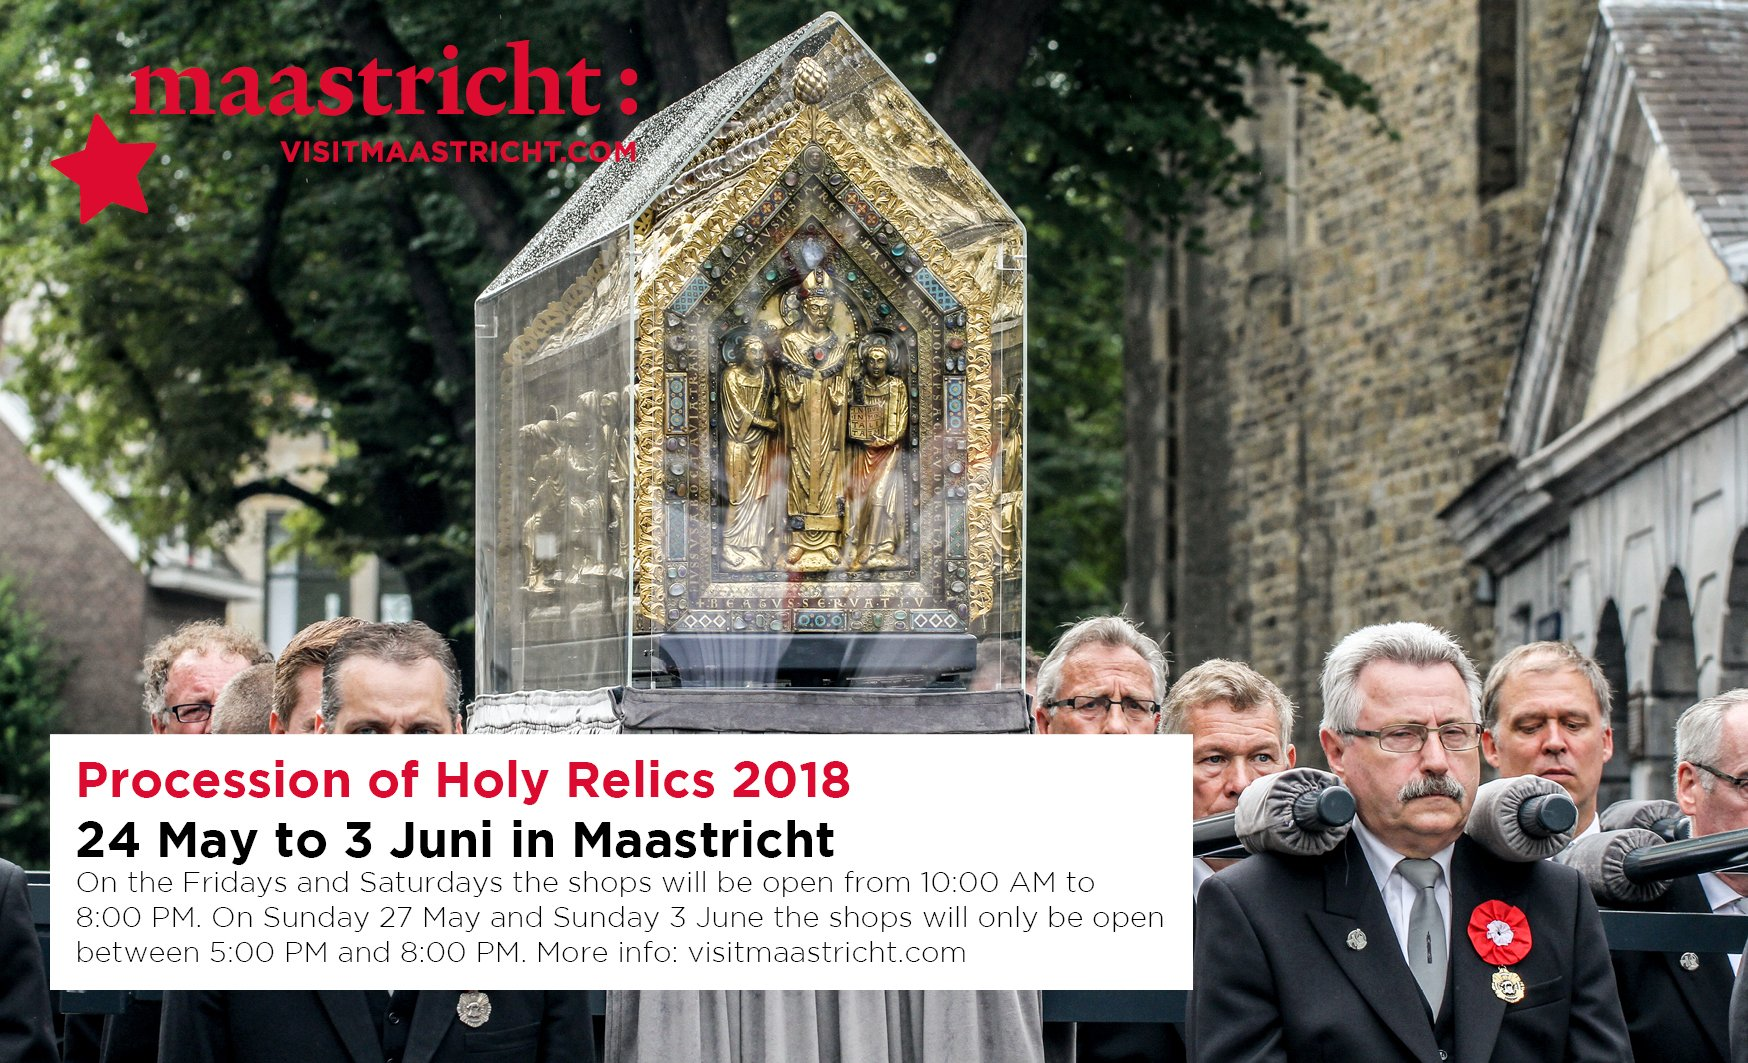 Procession of Holy Relics, Maastricht 2018